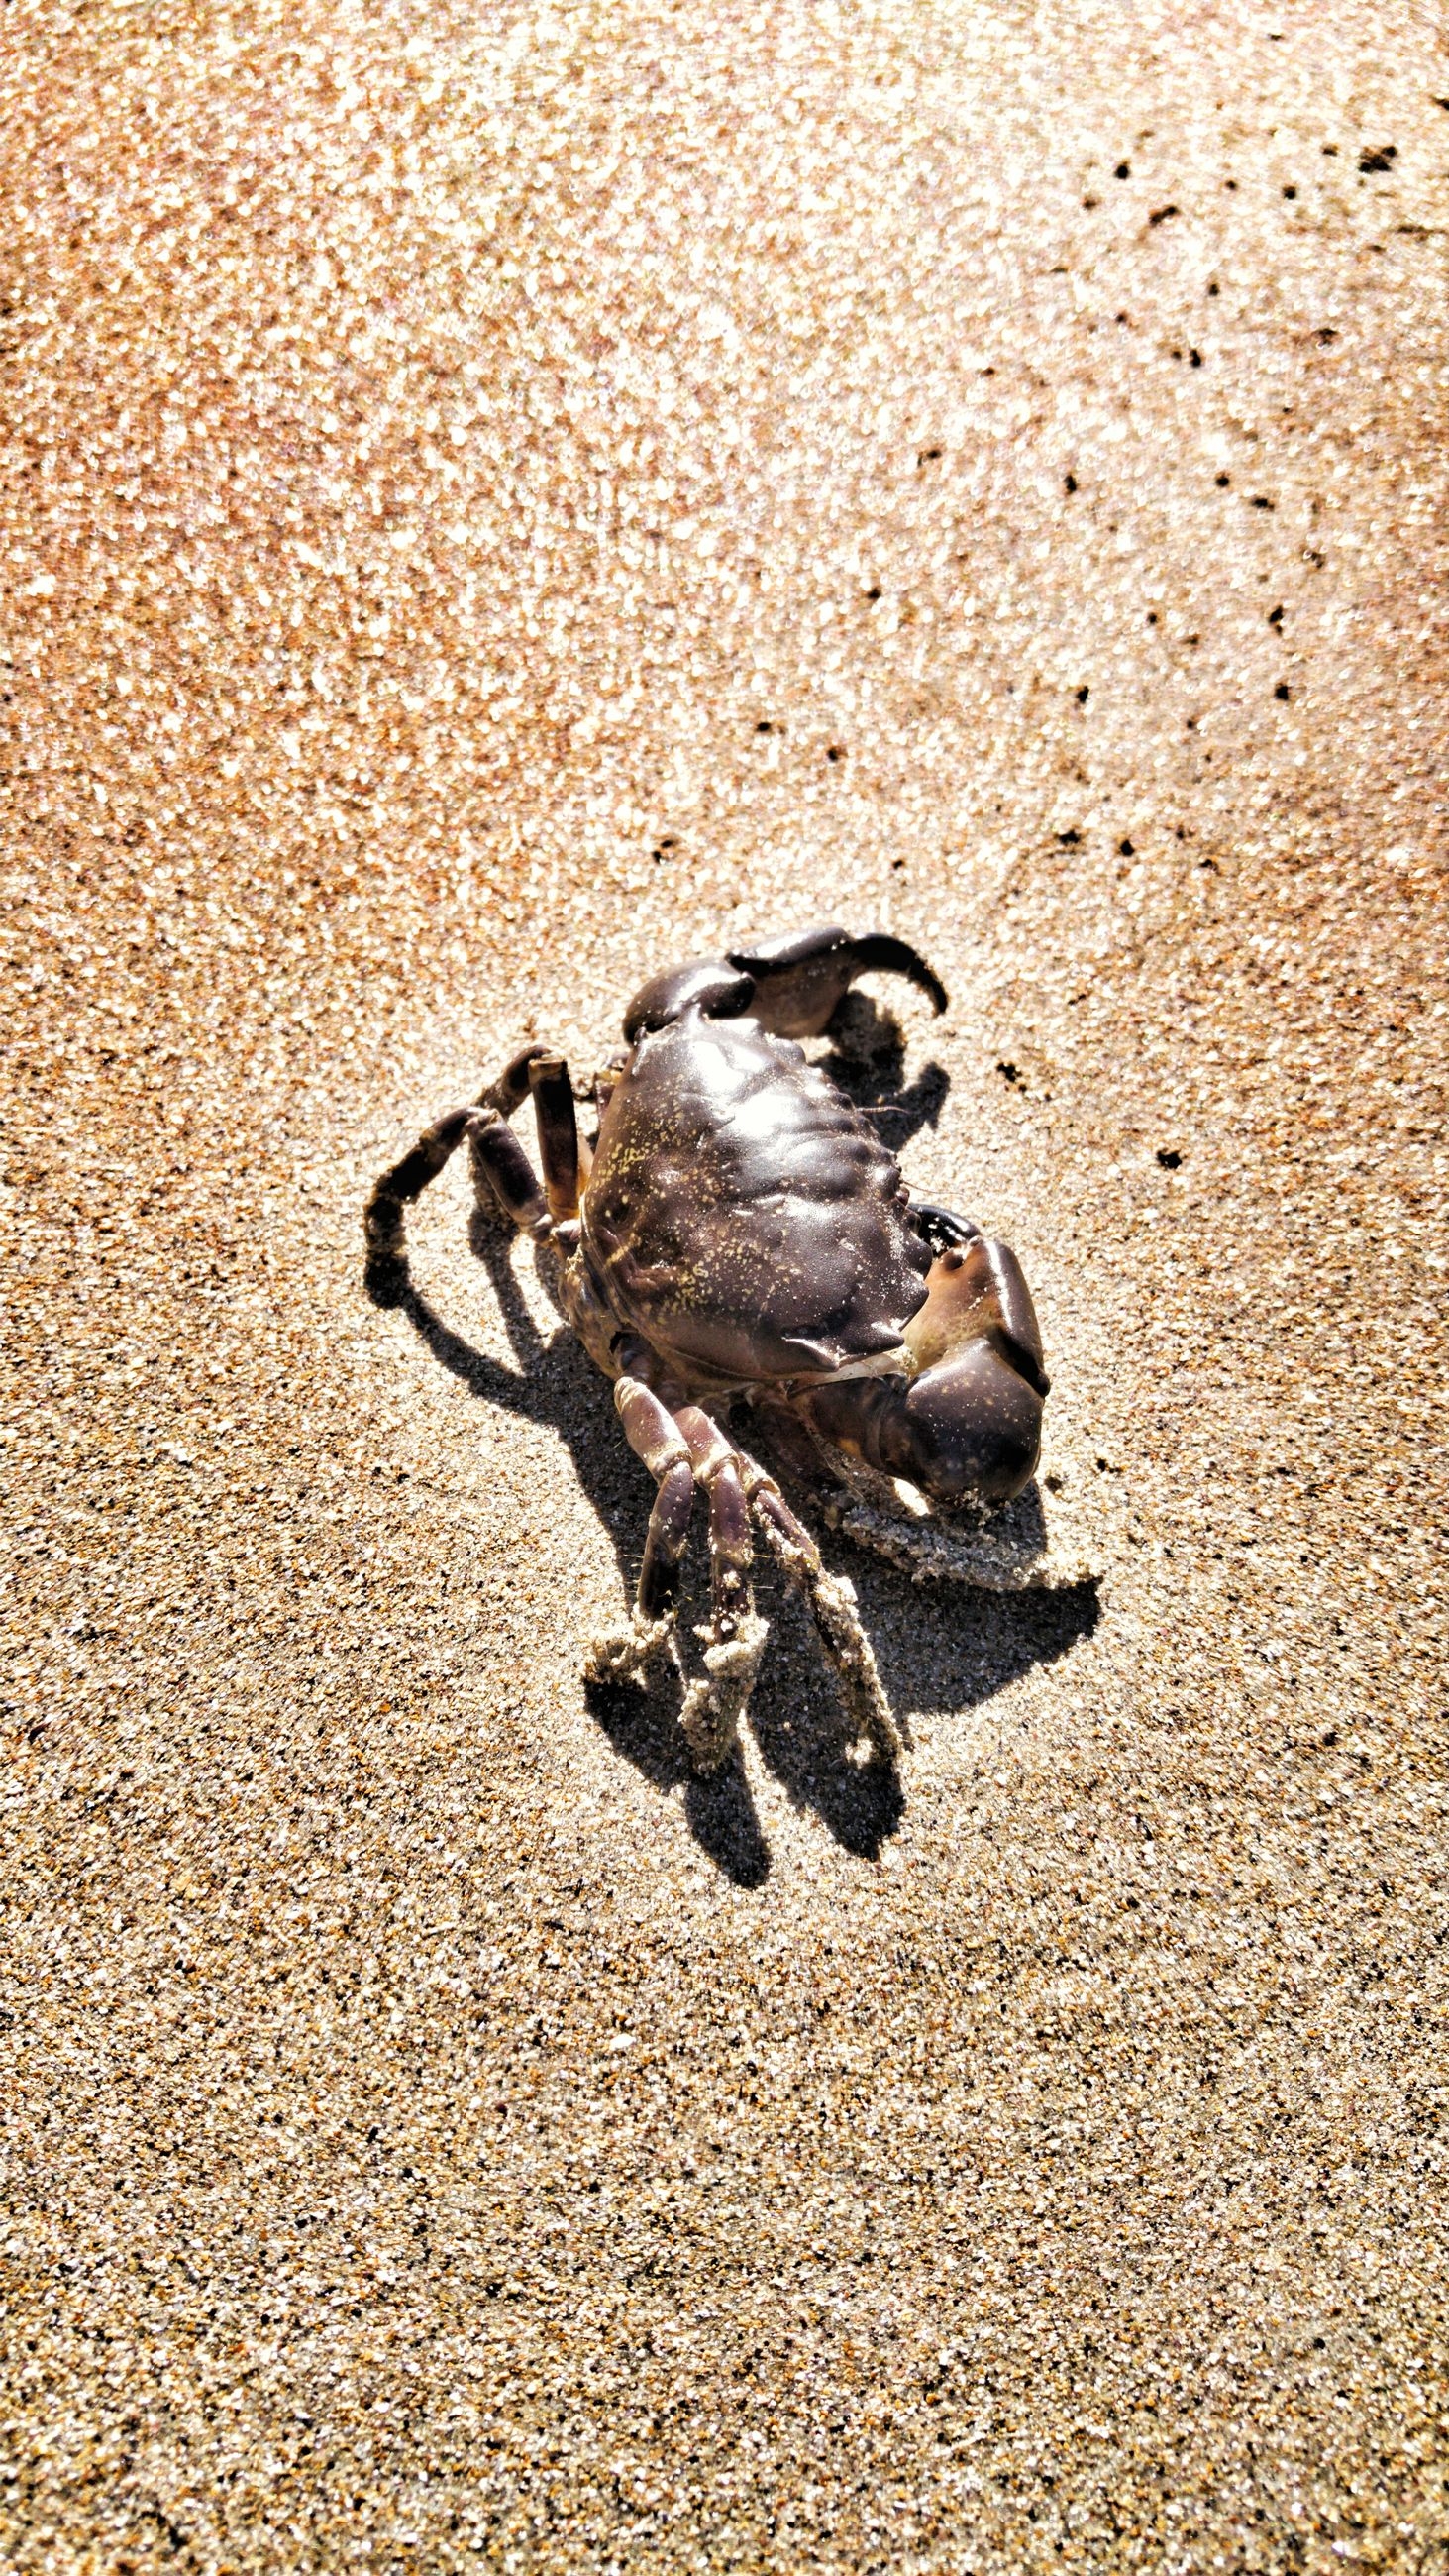 sand, beach, no people, animal themes, shadow, sunlight, day, outdoors, nature, one animal, mammal